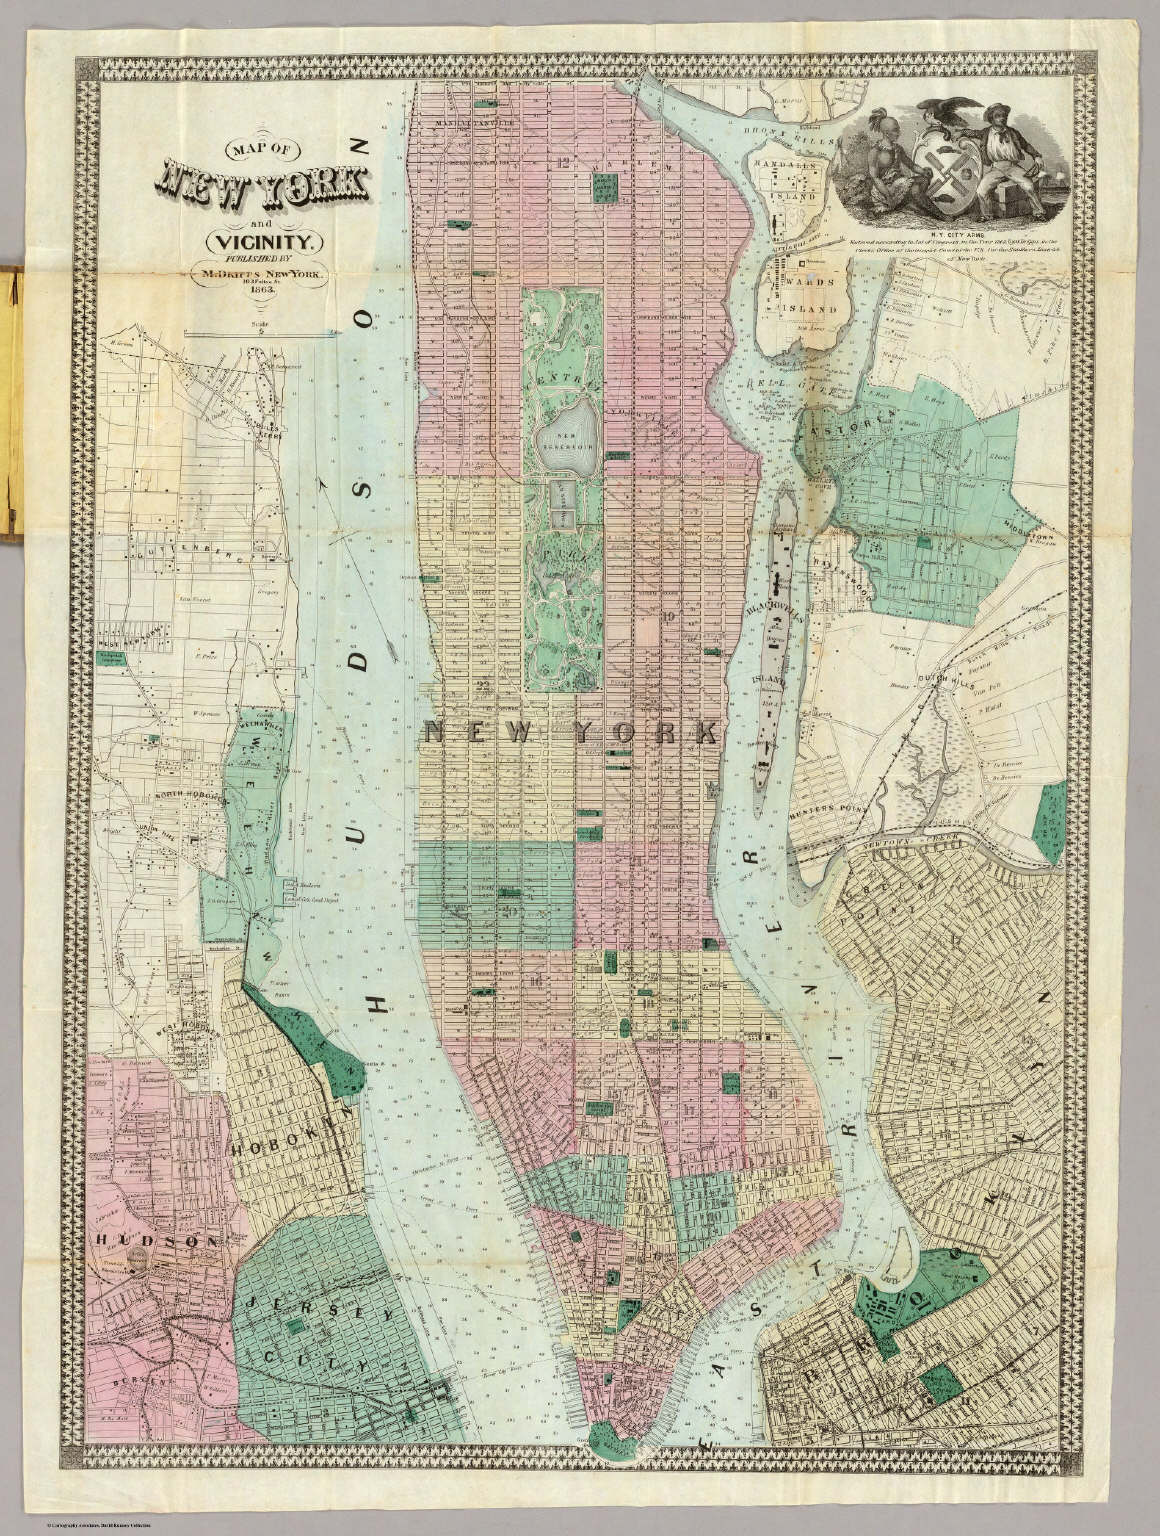 map of new york and vicinity dripps matthew 1863